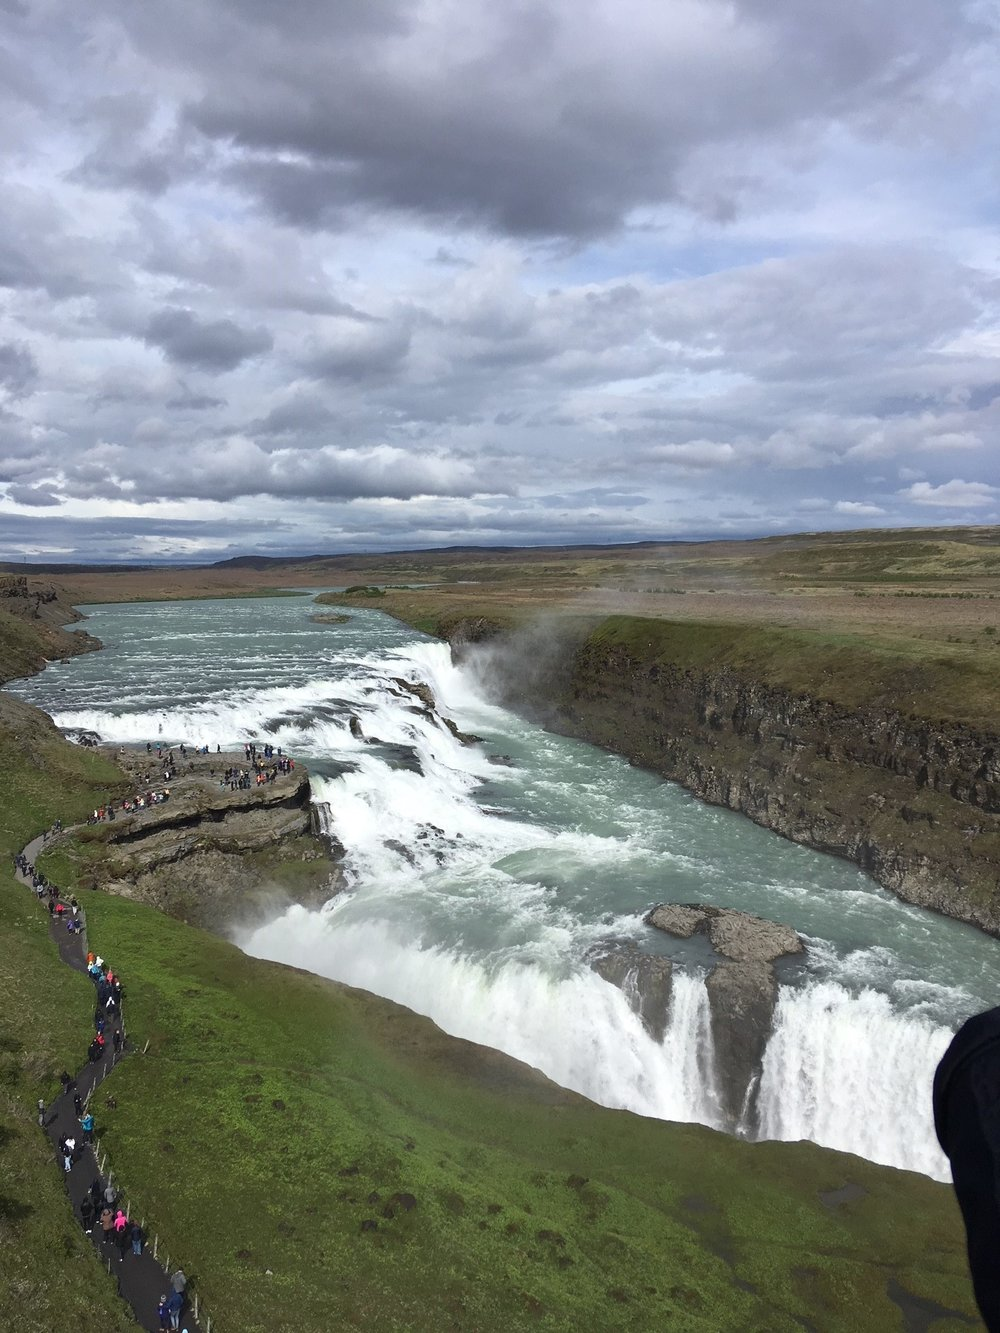 Gillian 22nd June image 36 Gullfoss - double waterfall.jpg